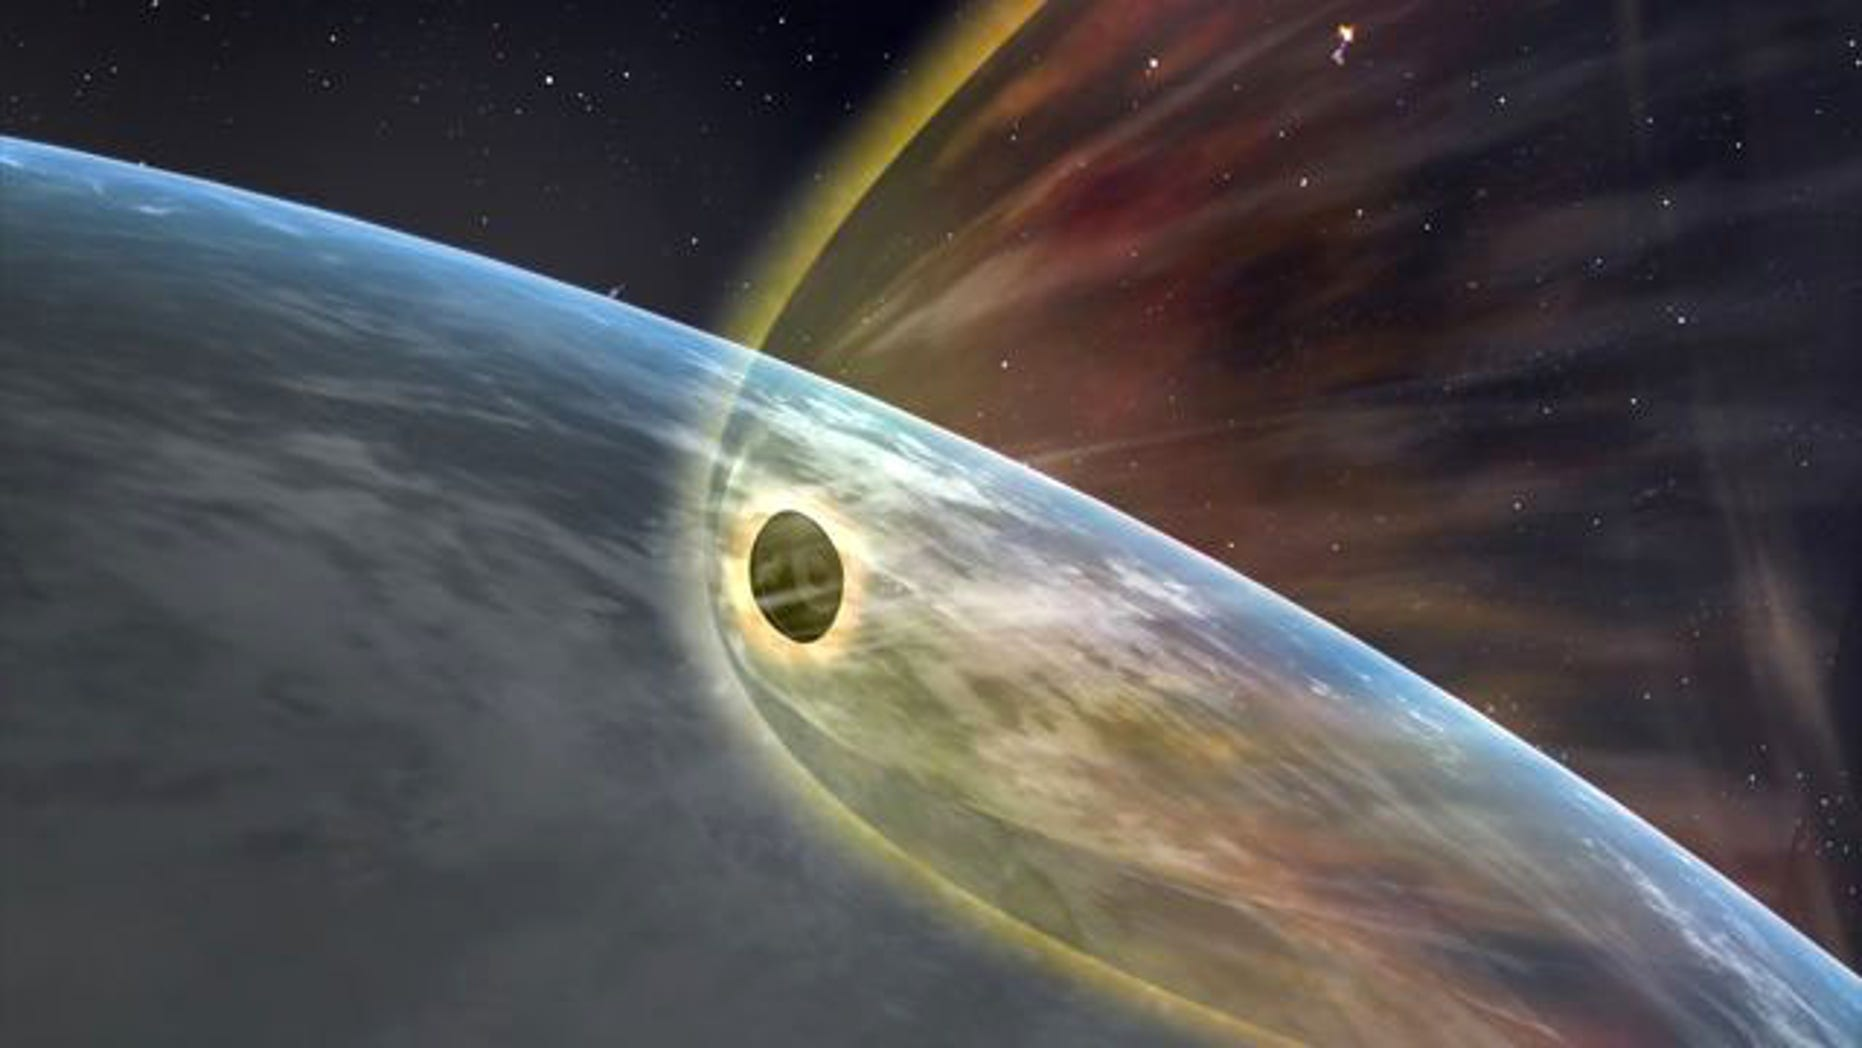 An artist's illustration of the sample return capsule from Japan's Hayabusa asteroid probe returning to Earth on June 13, 2010 to end its 7-year mission.